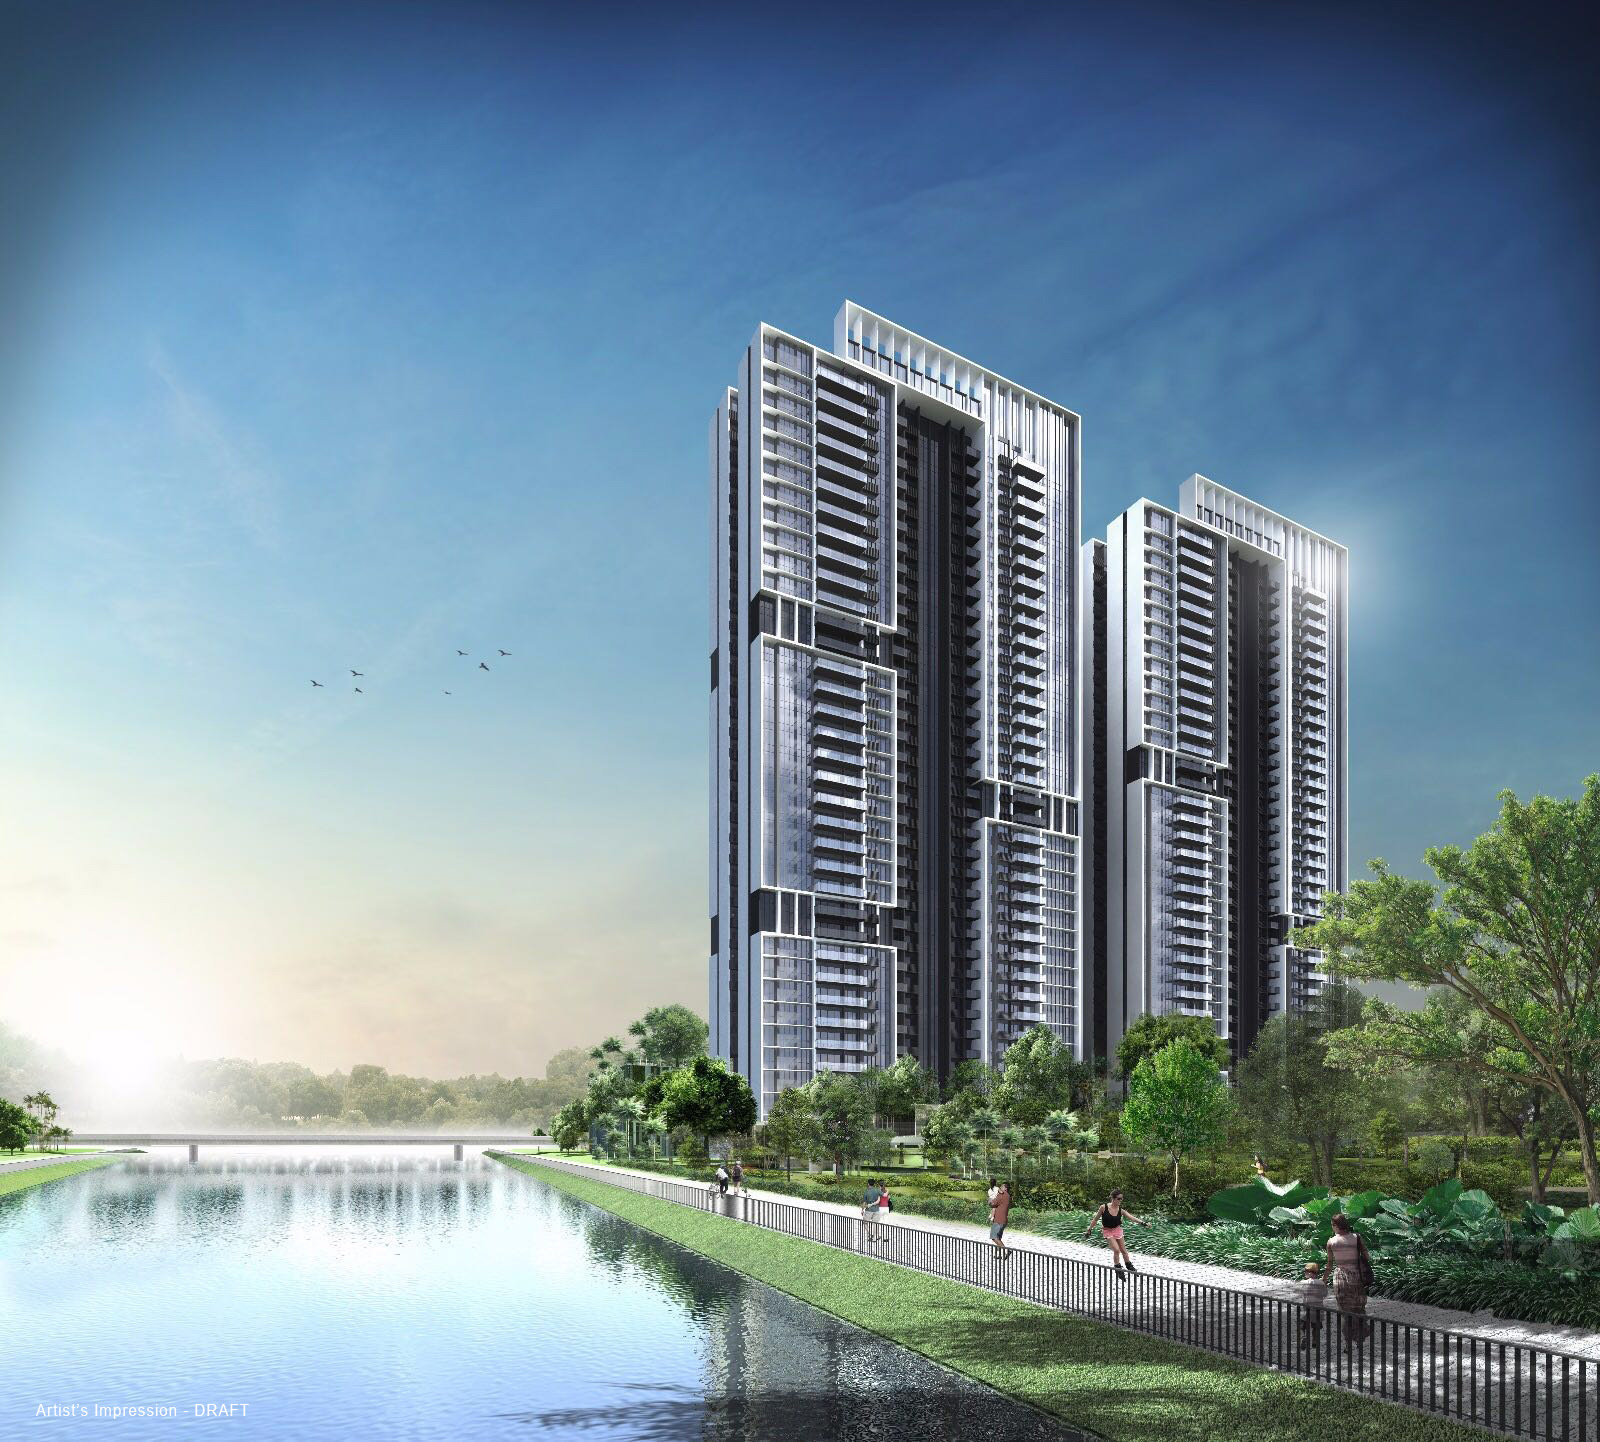 Parc Riviera has 2 towers, 36 storeys each with a total of 752 units. It is located within 1km of the International Business Park and the upcoming High Speed Rail Terminus